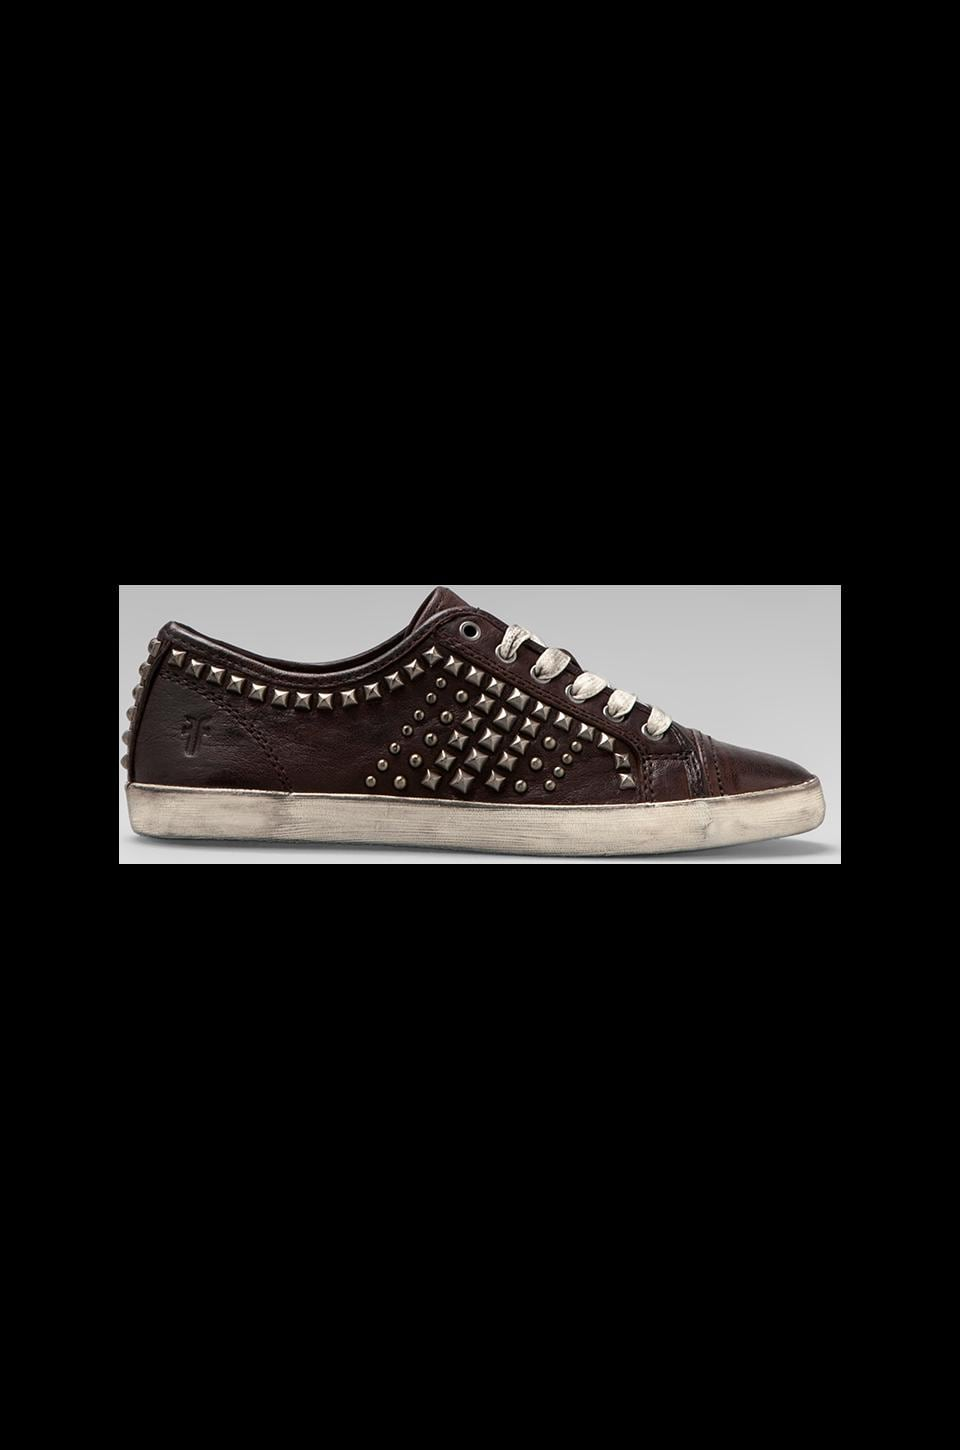 Frye Kira Biker Low Top in Dark Brown